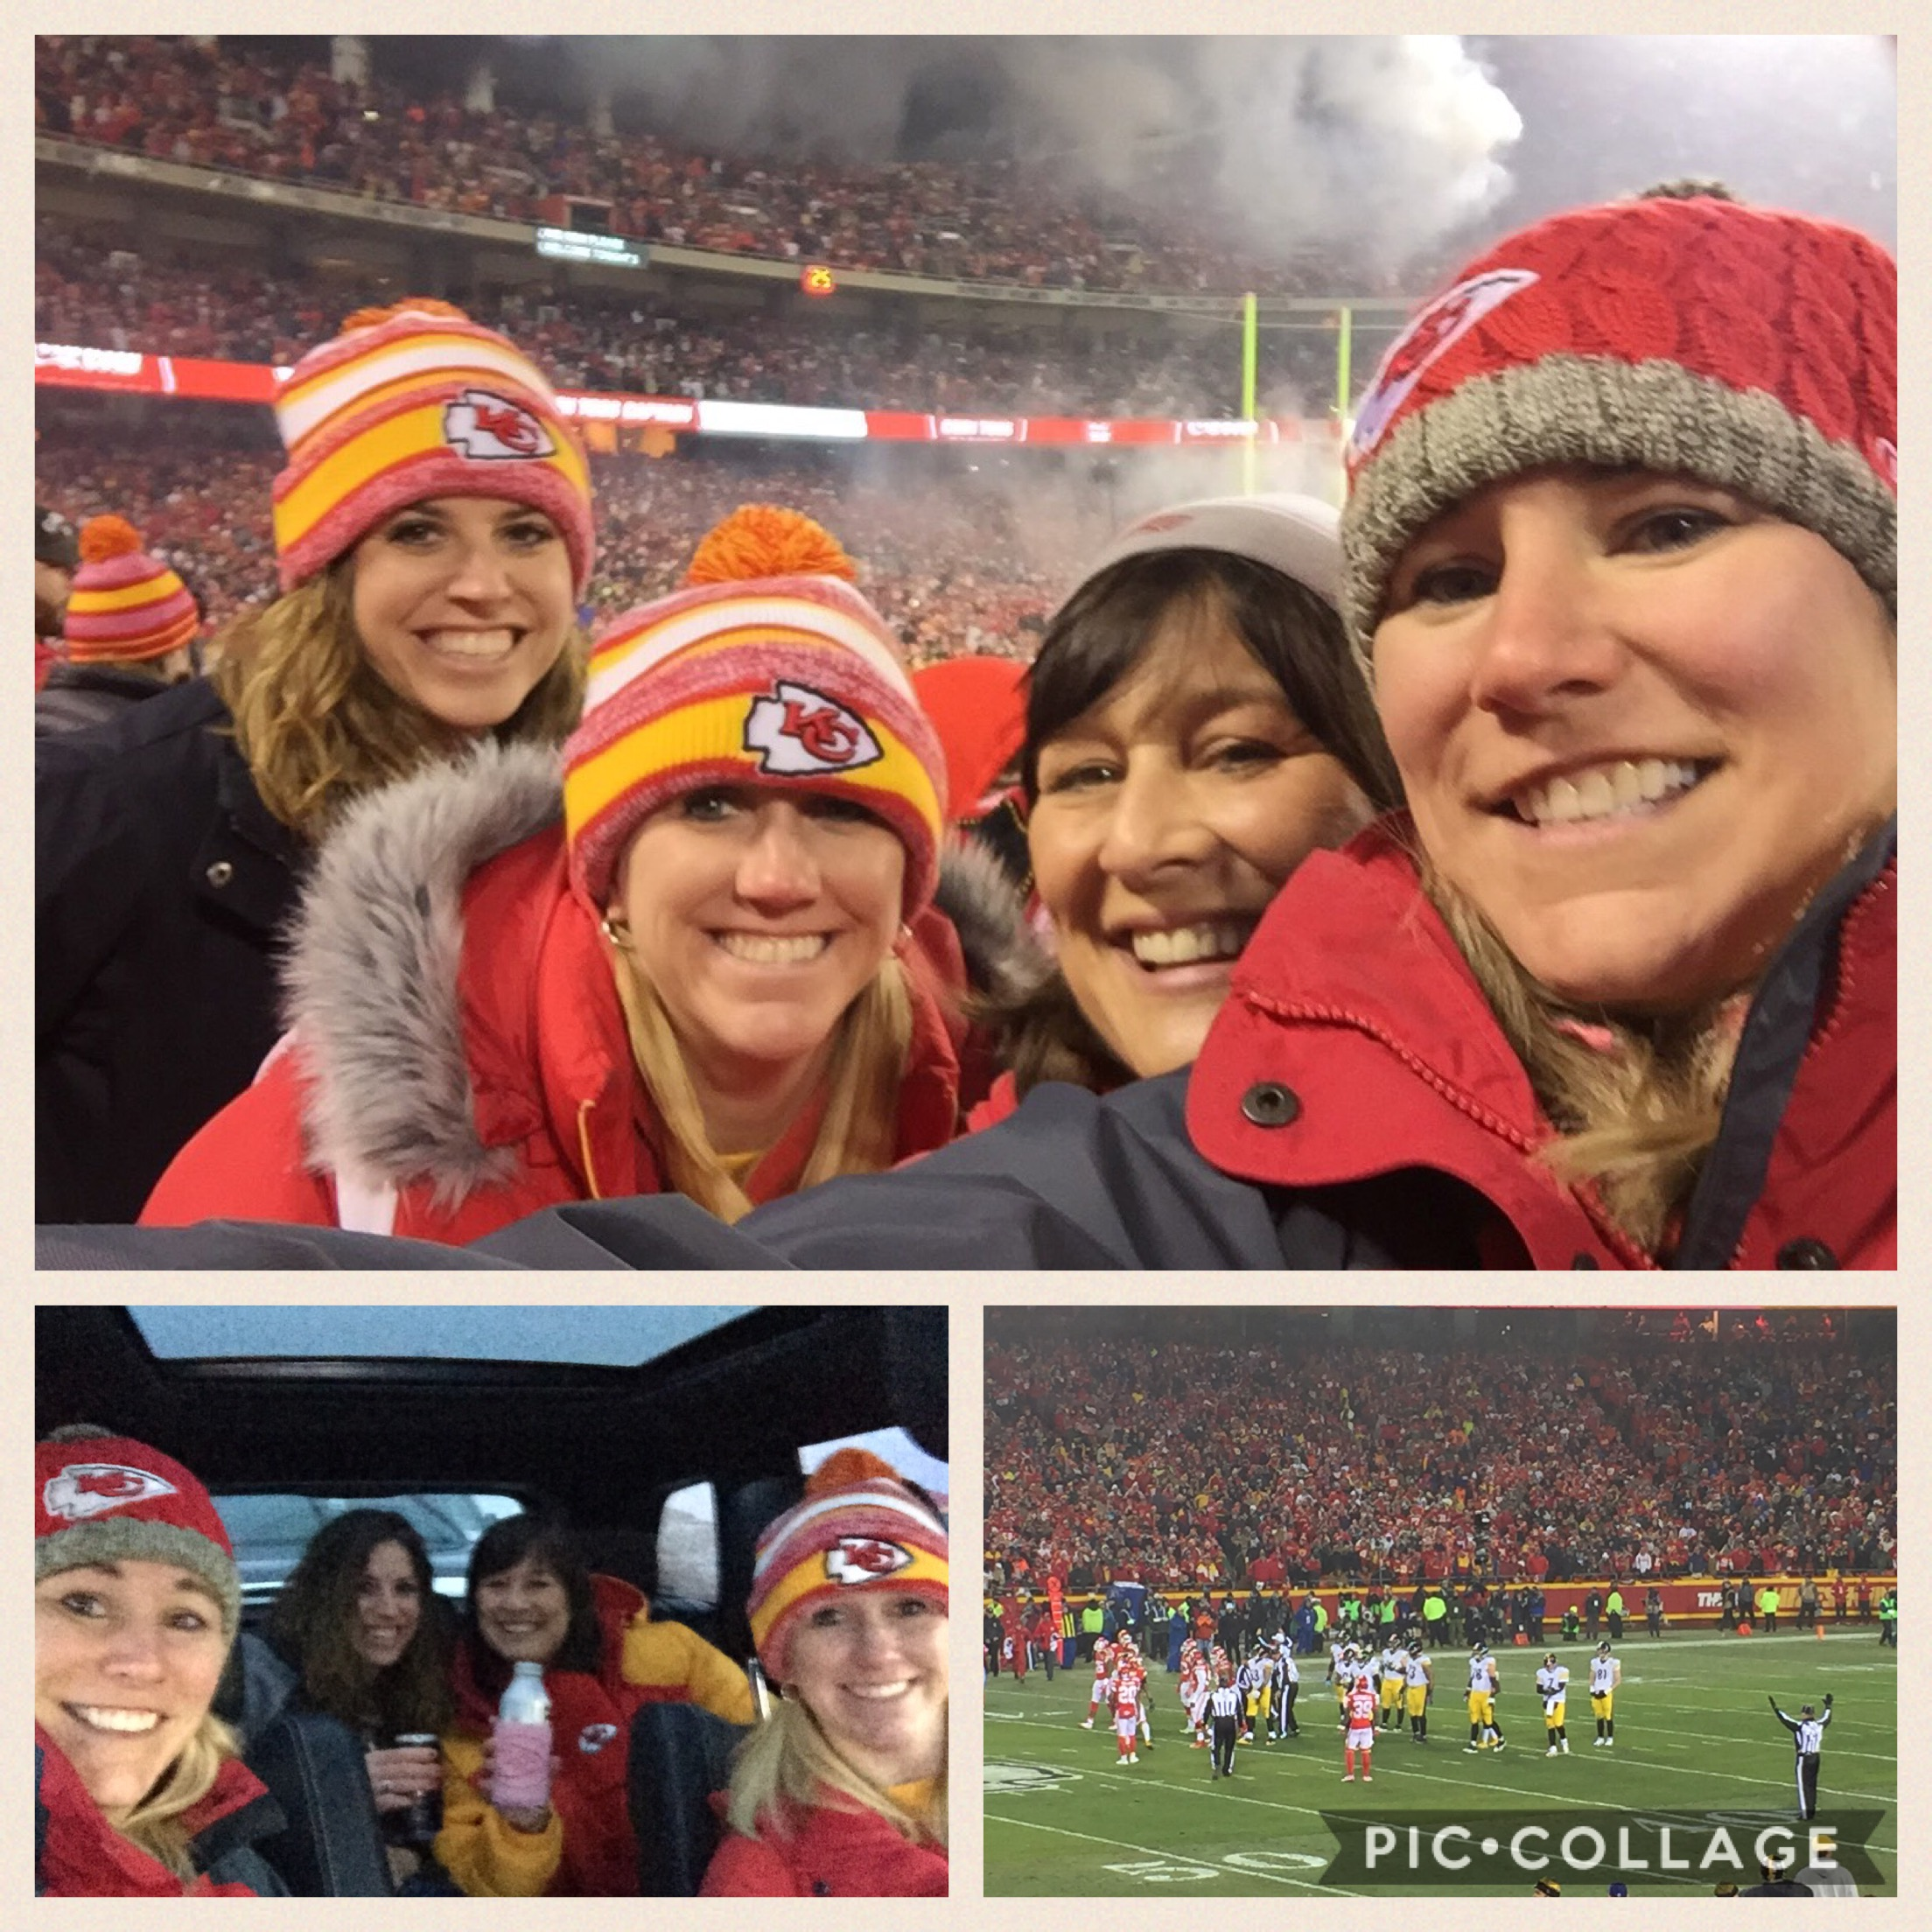 Nicole joined Steph, Leslie and Krist for the big game! 🏈❤️🏈